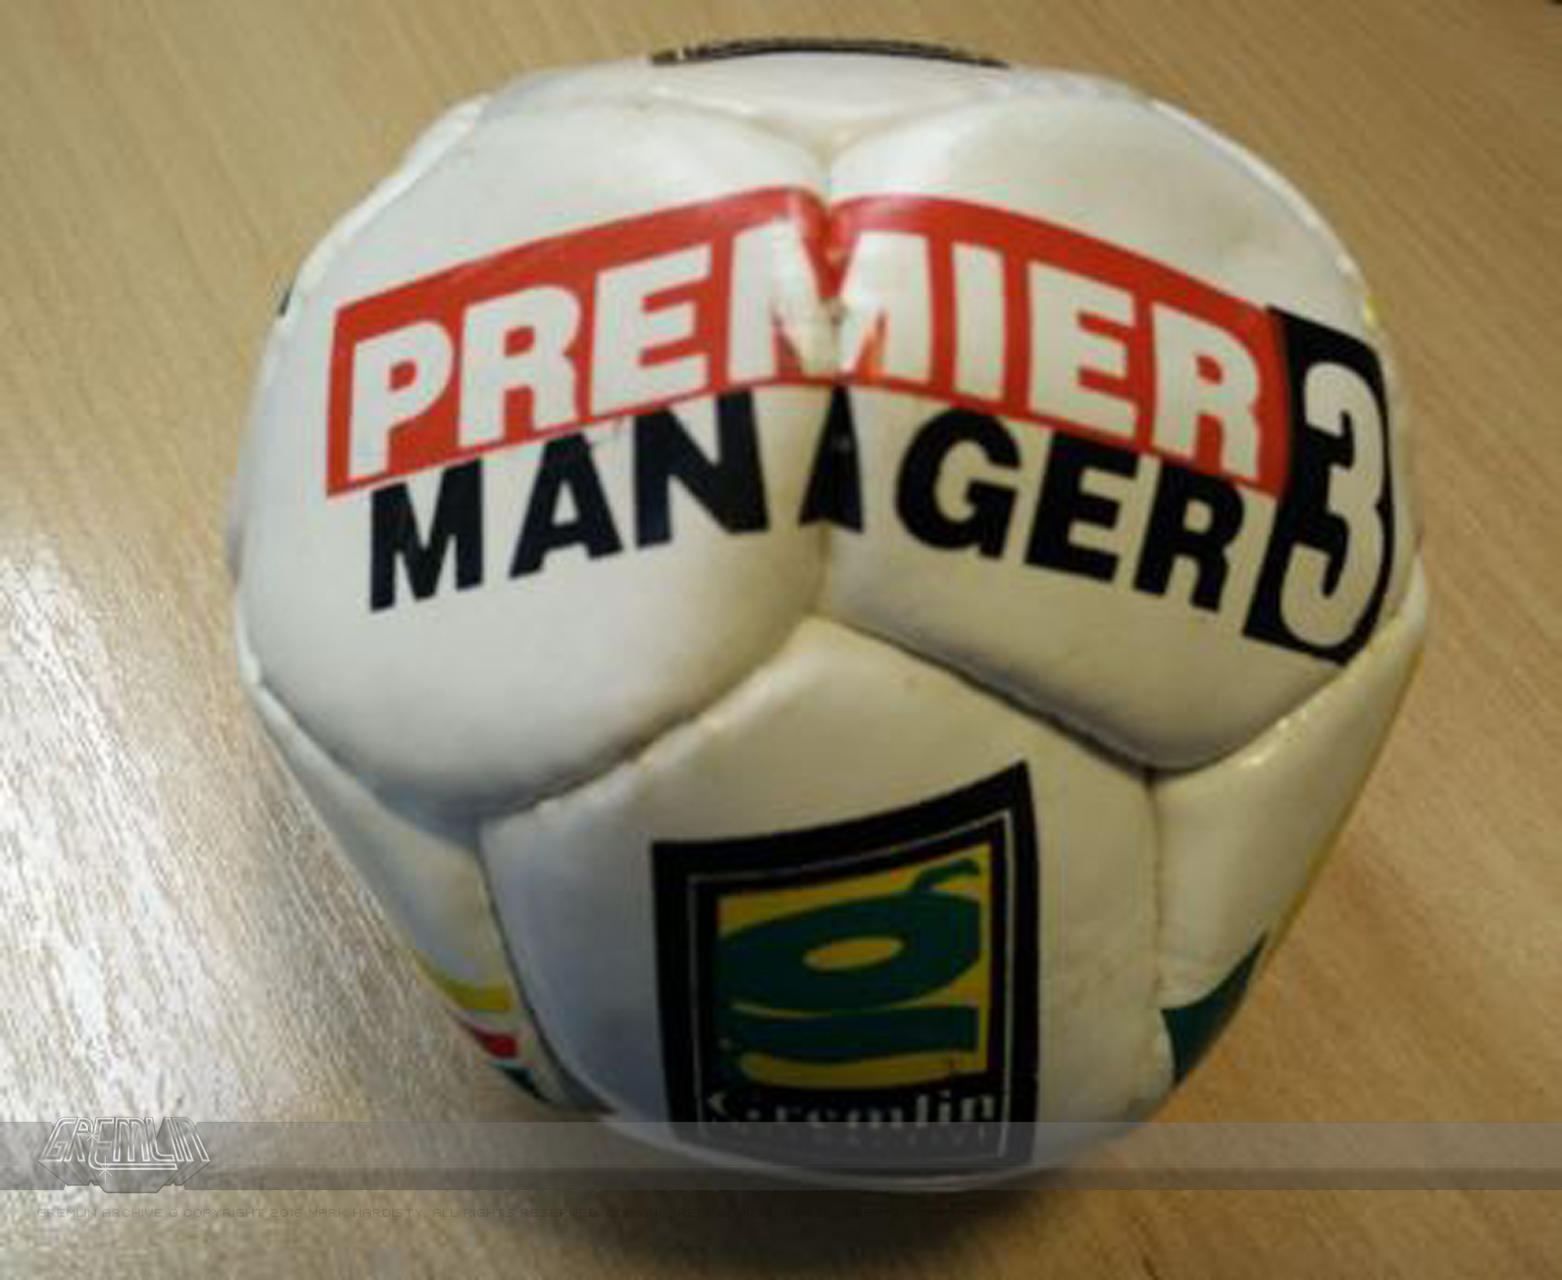 Premier Manager 3 Football